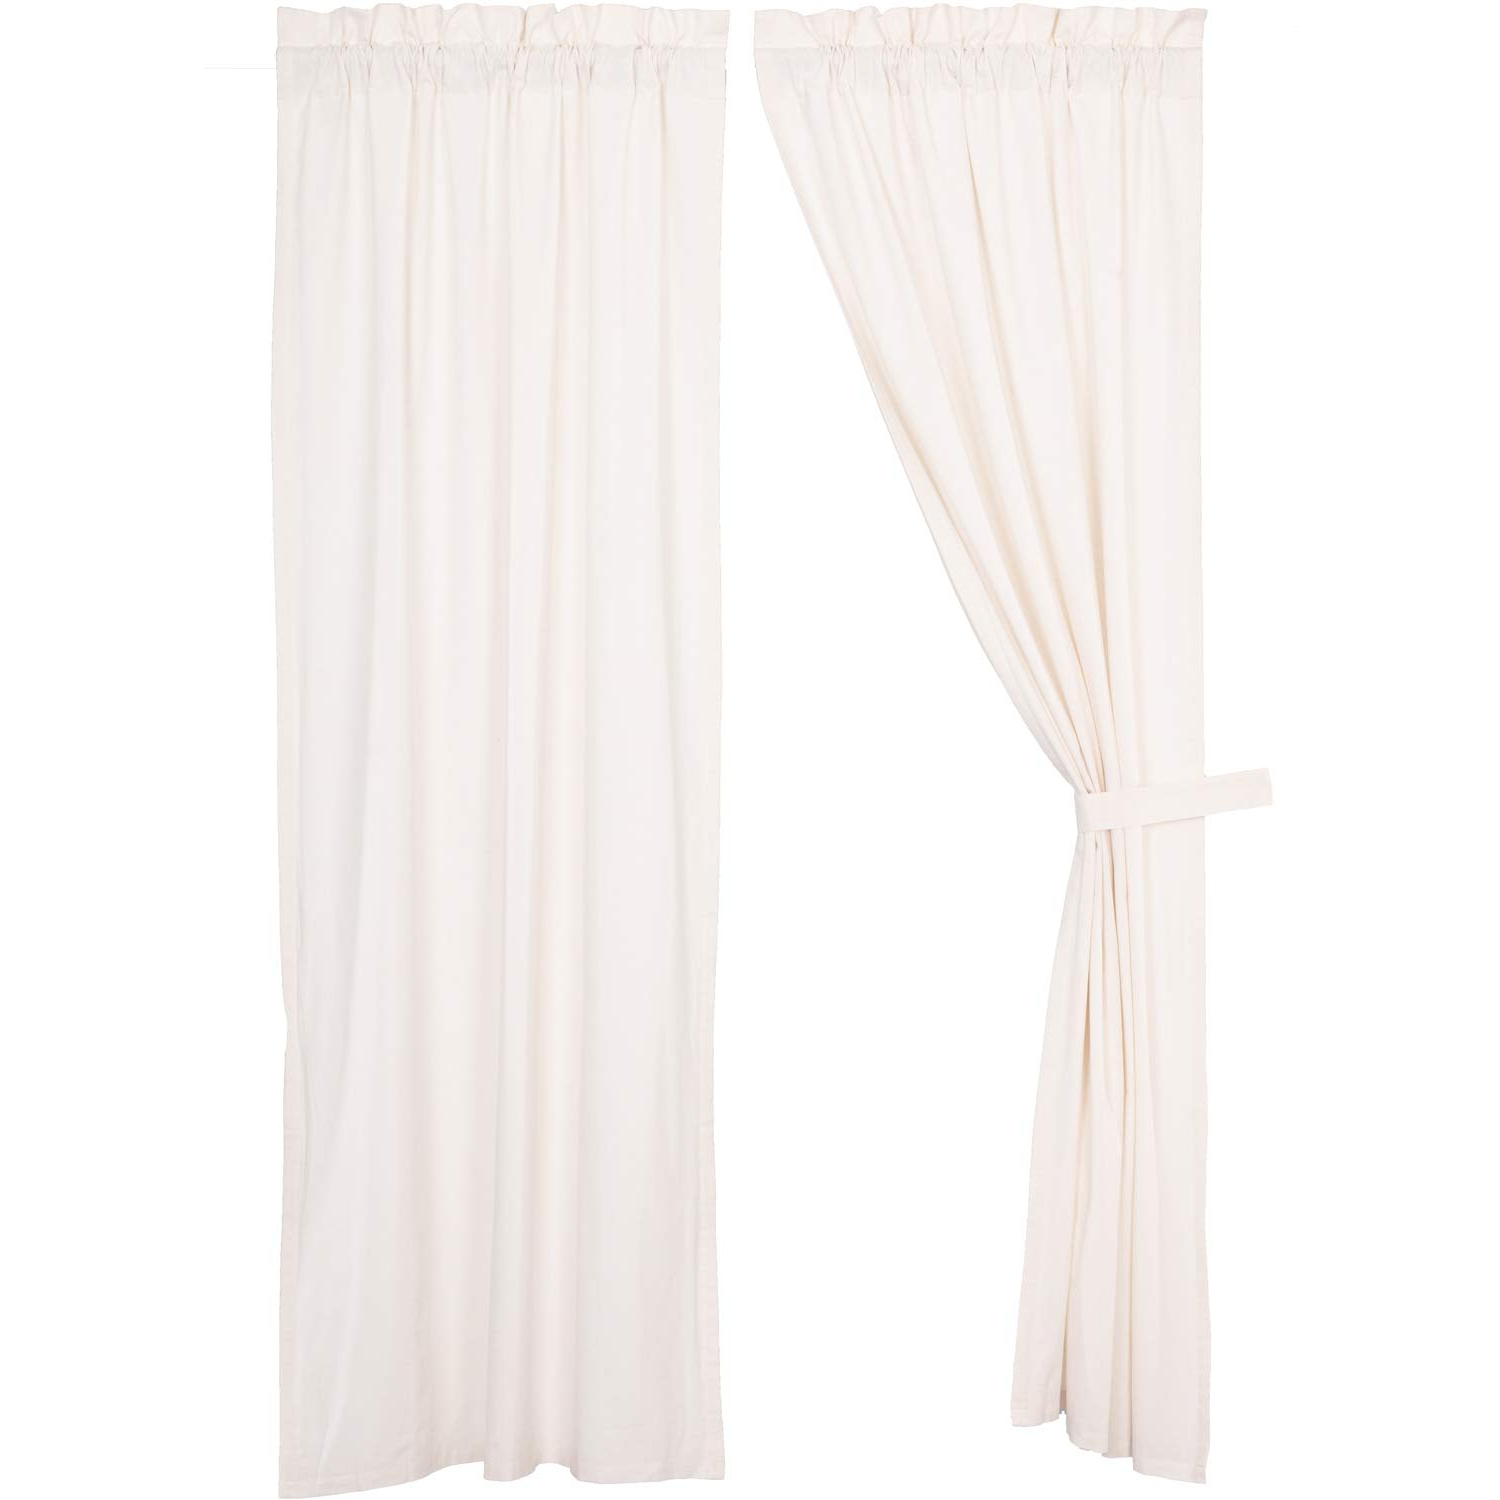 Amazon: Vhc Brands Farmhouse Curtains Simple Life Rod Within Well Known Rod Pocket Cotton Linen Blend Solid Color Flax Kitchen Curtains (View 12 of 20)